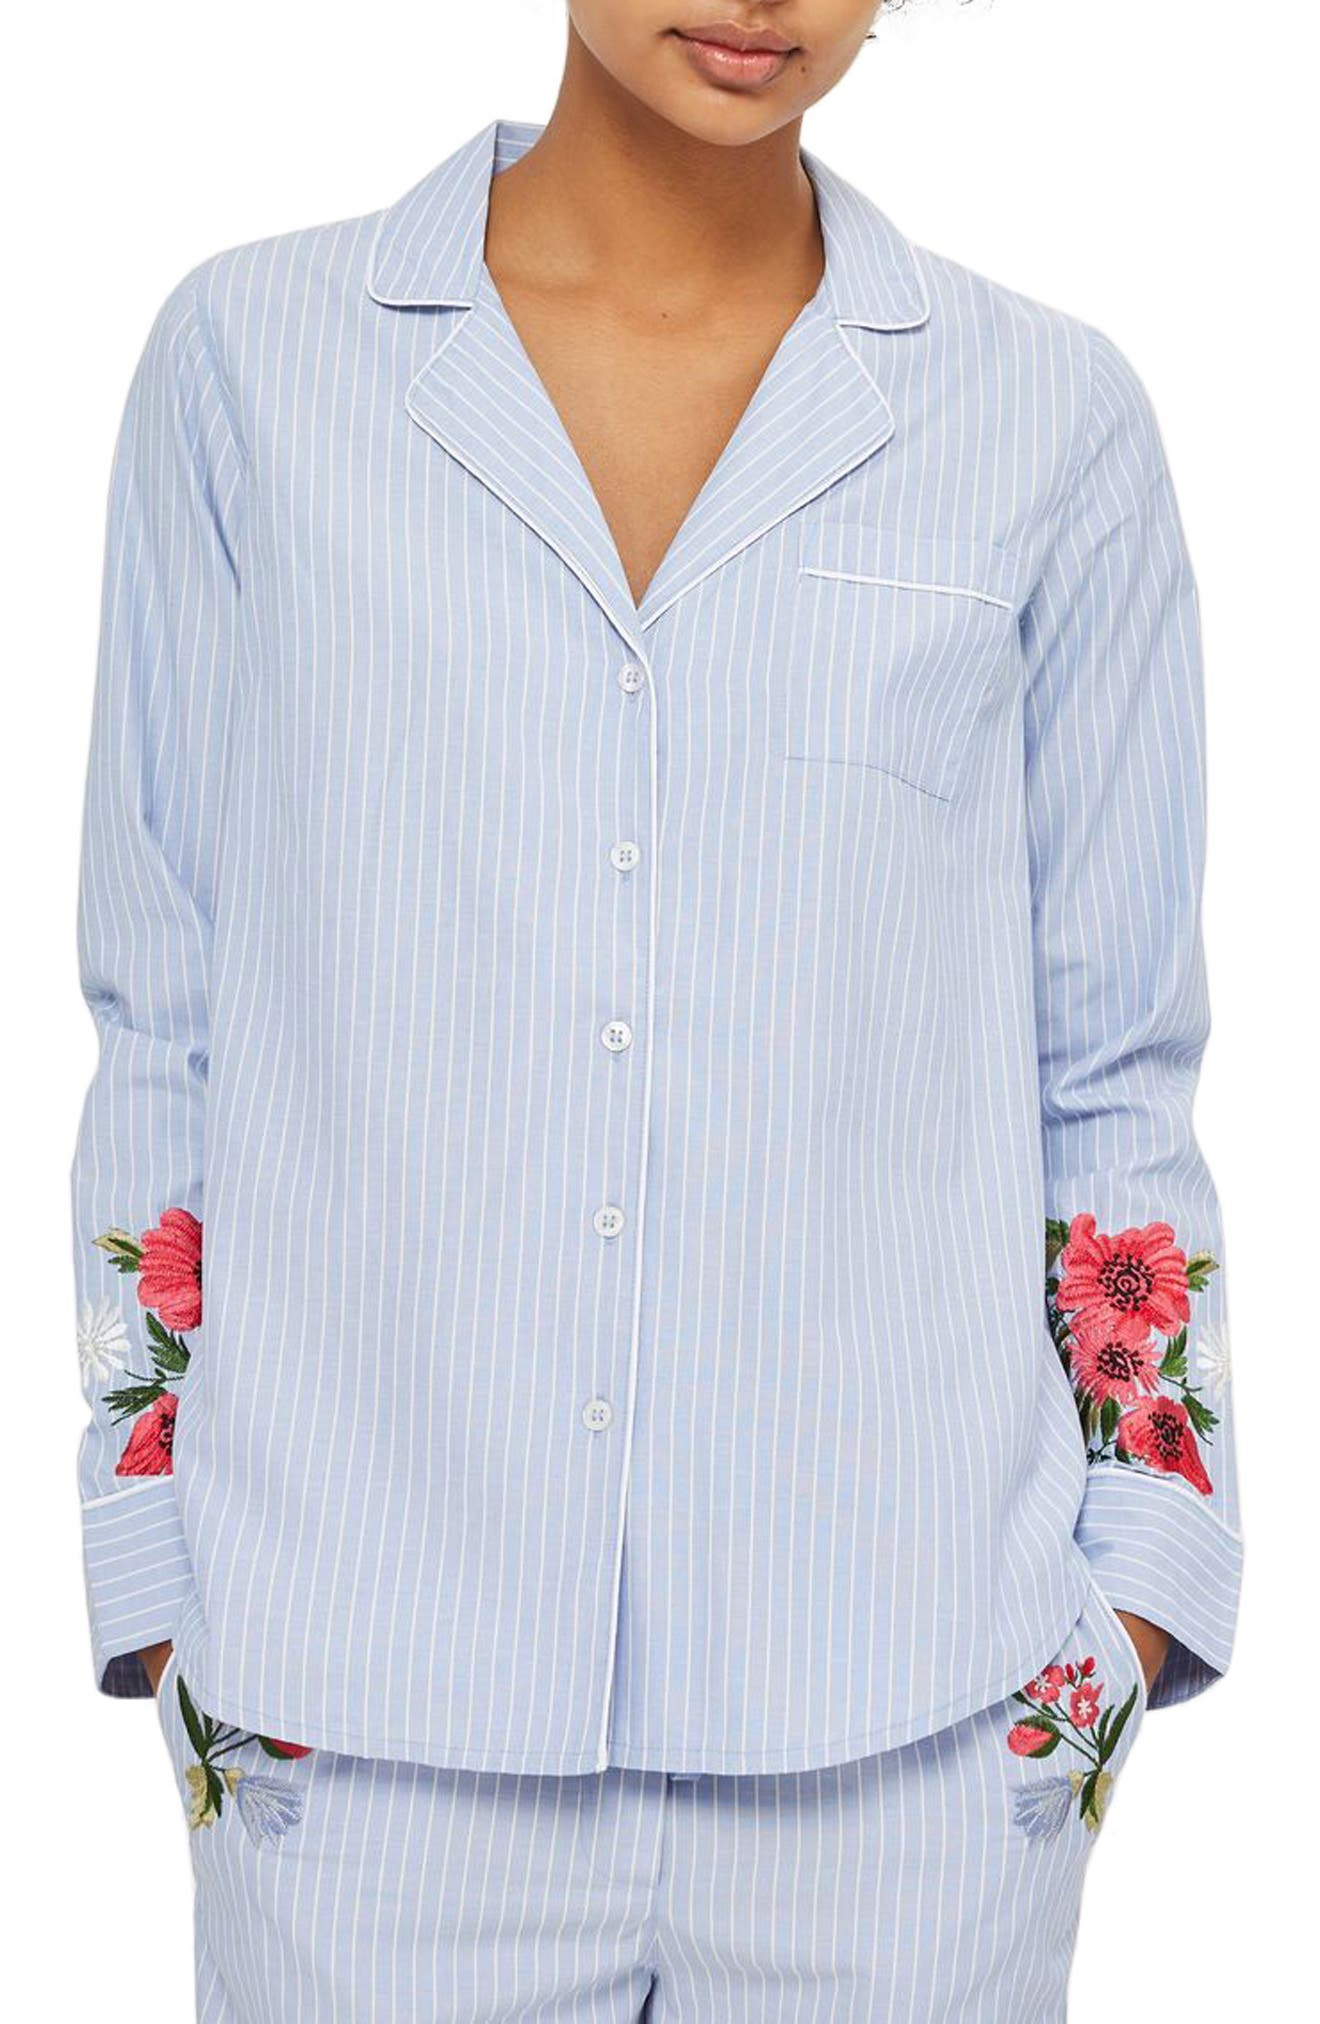 Floral Embroidered Stripe Nightshirt,                             Main thumbnail 1, color,                             Blue Multi